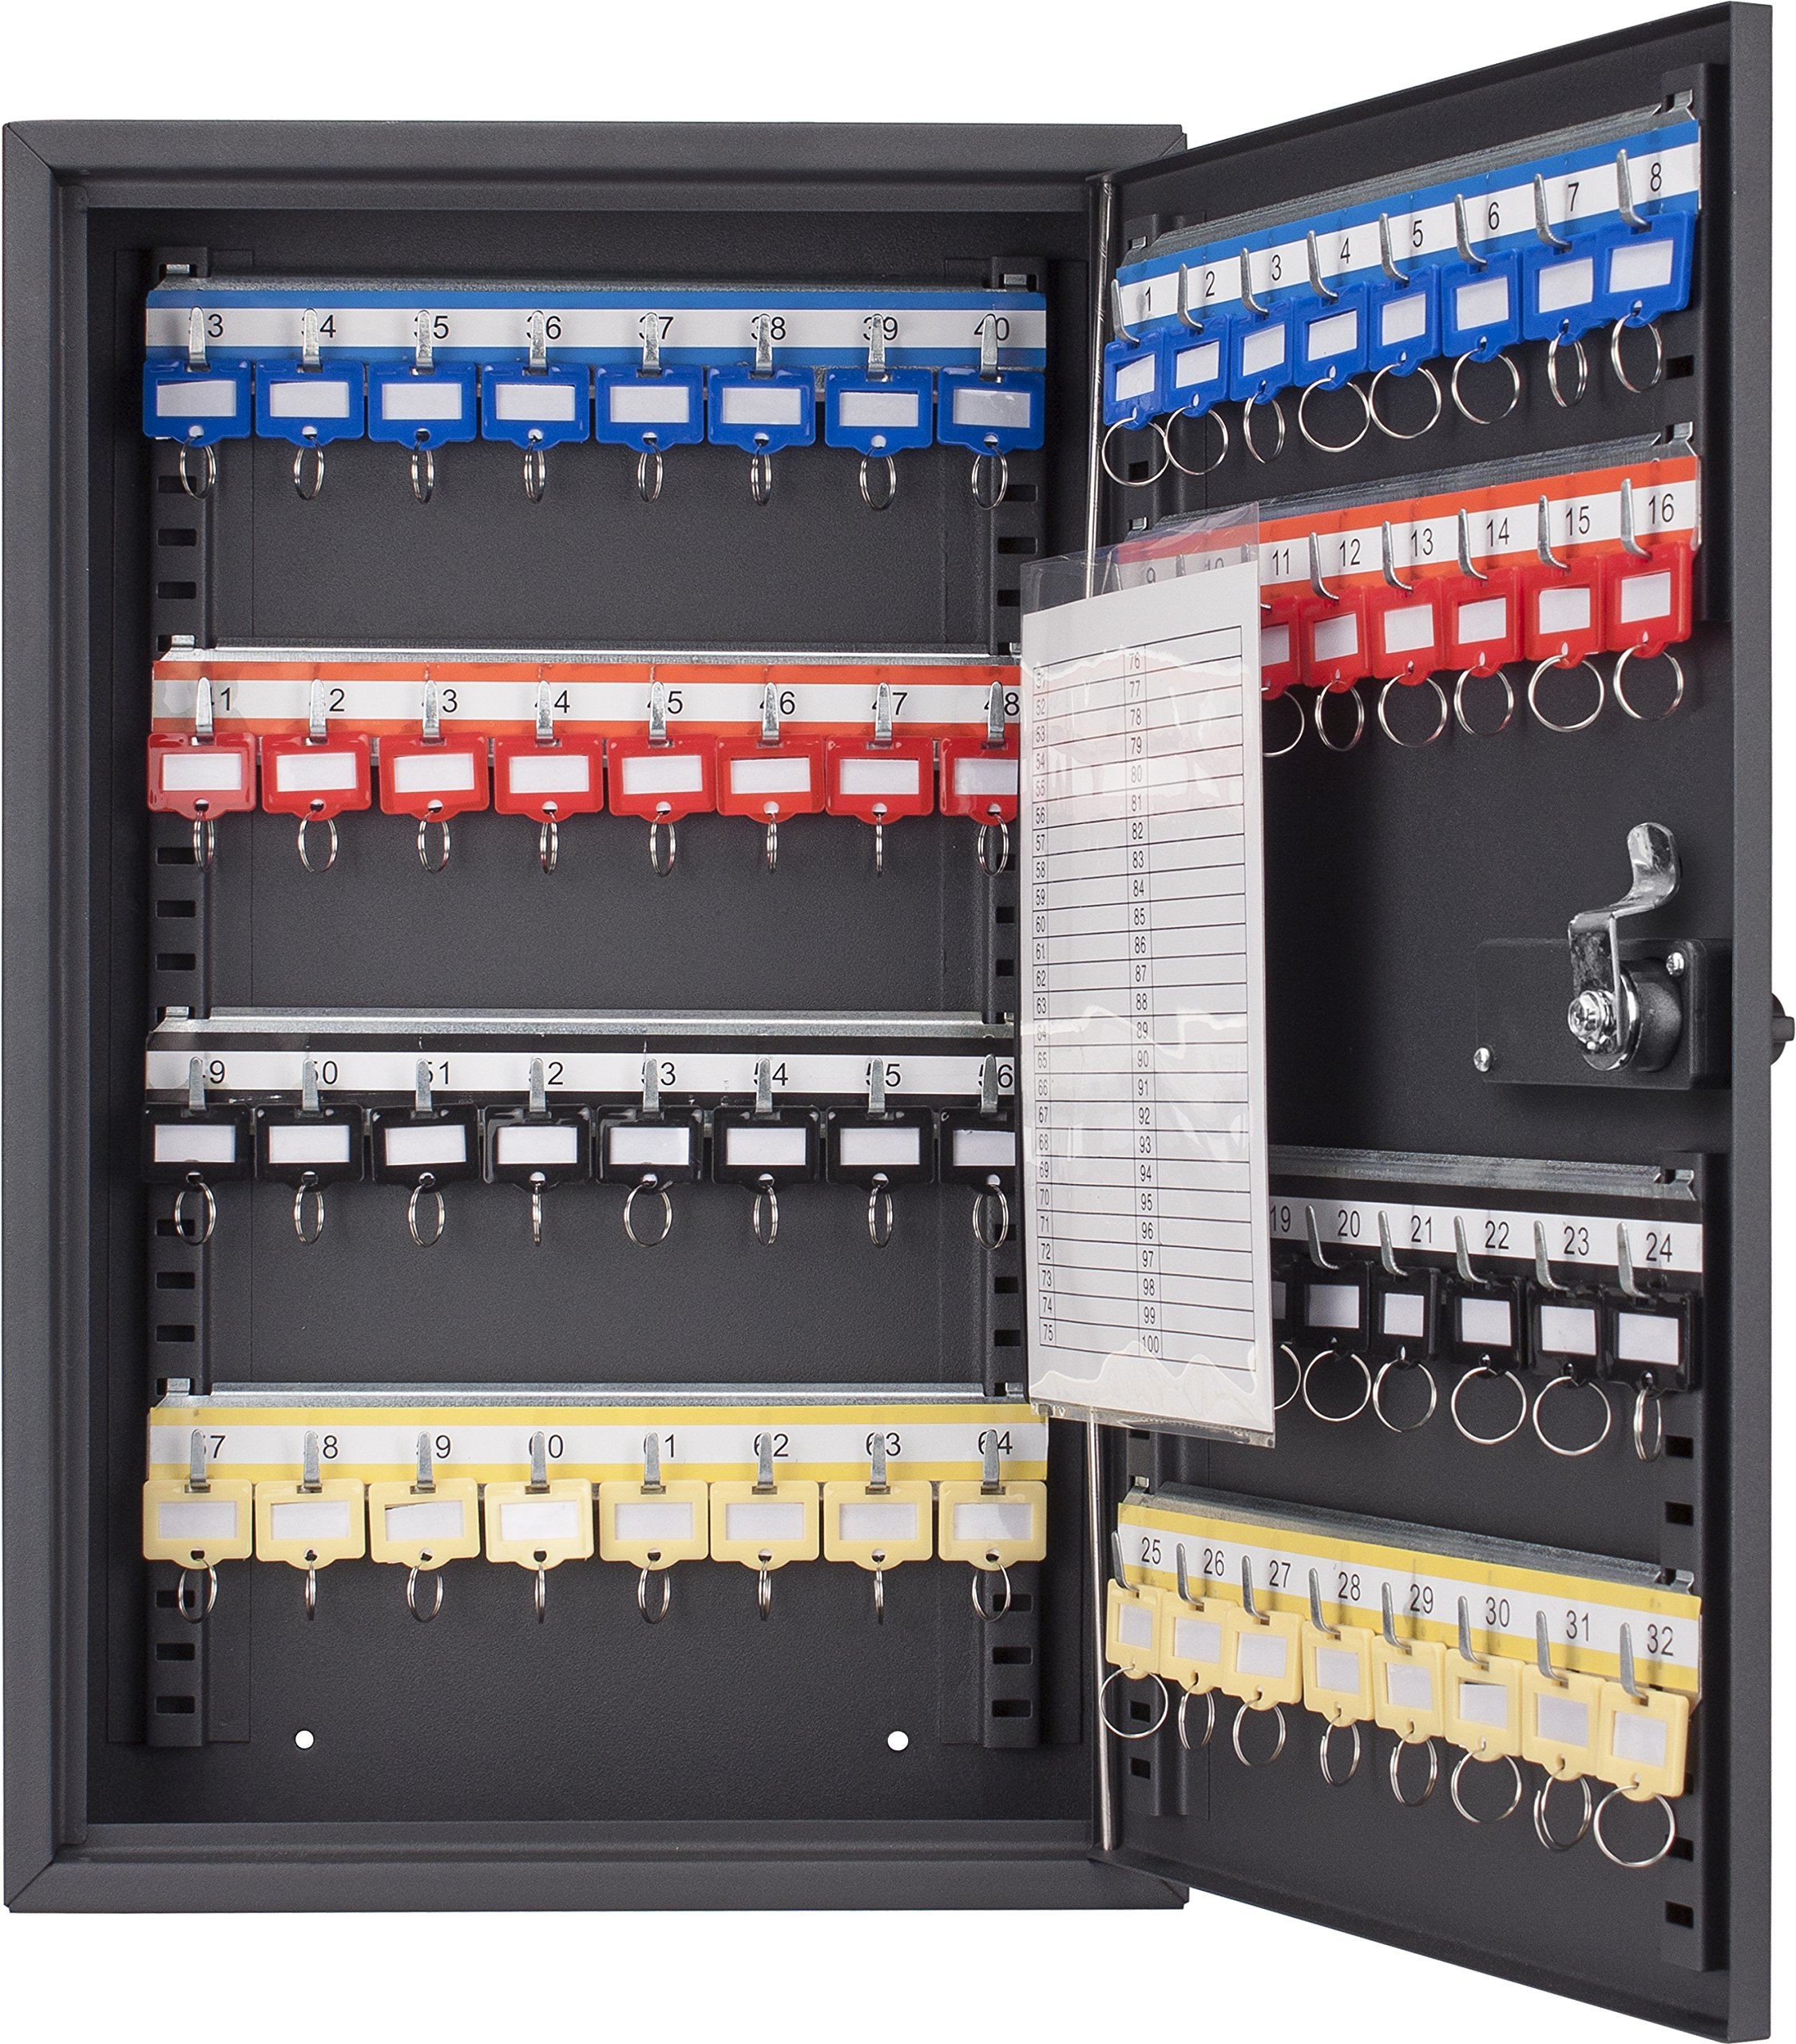 BARSKA CB13264 64 Position Key Cabinet with Combo Lock by BARSKA (Image #2)